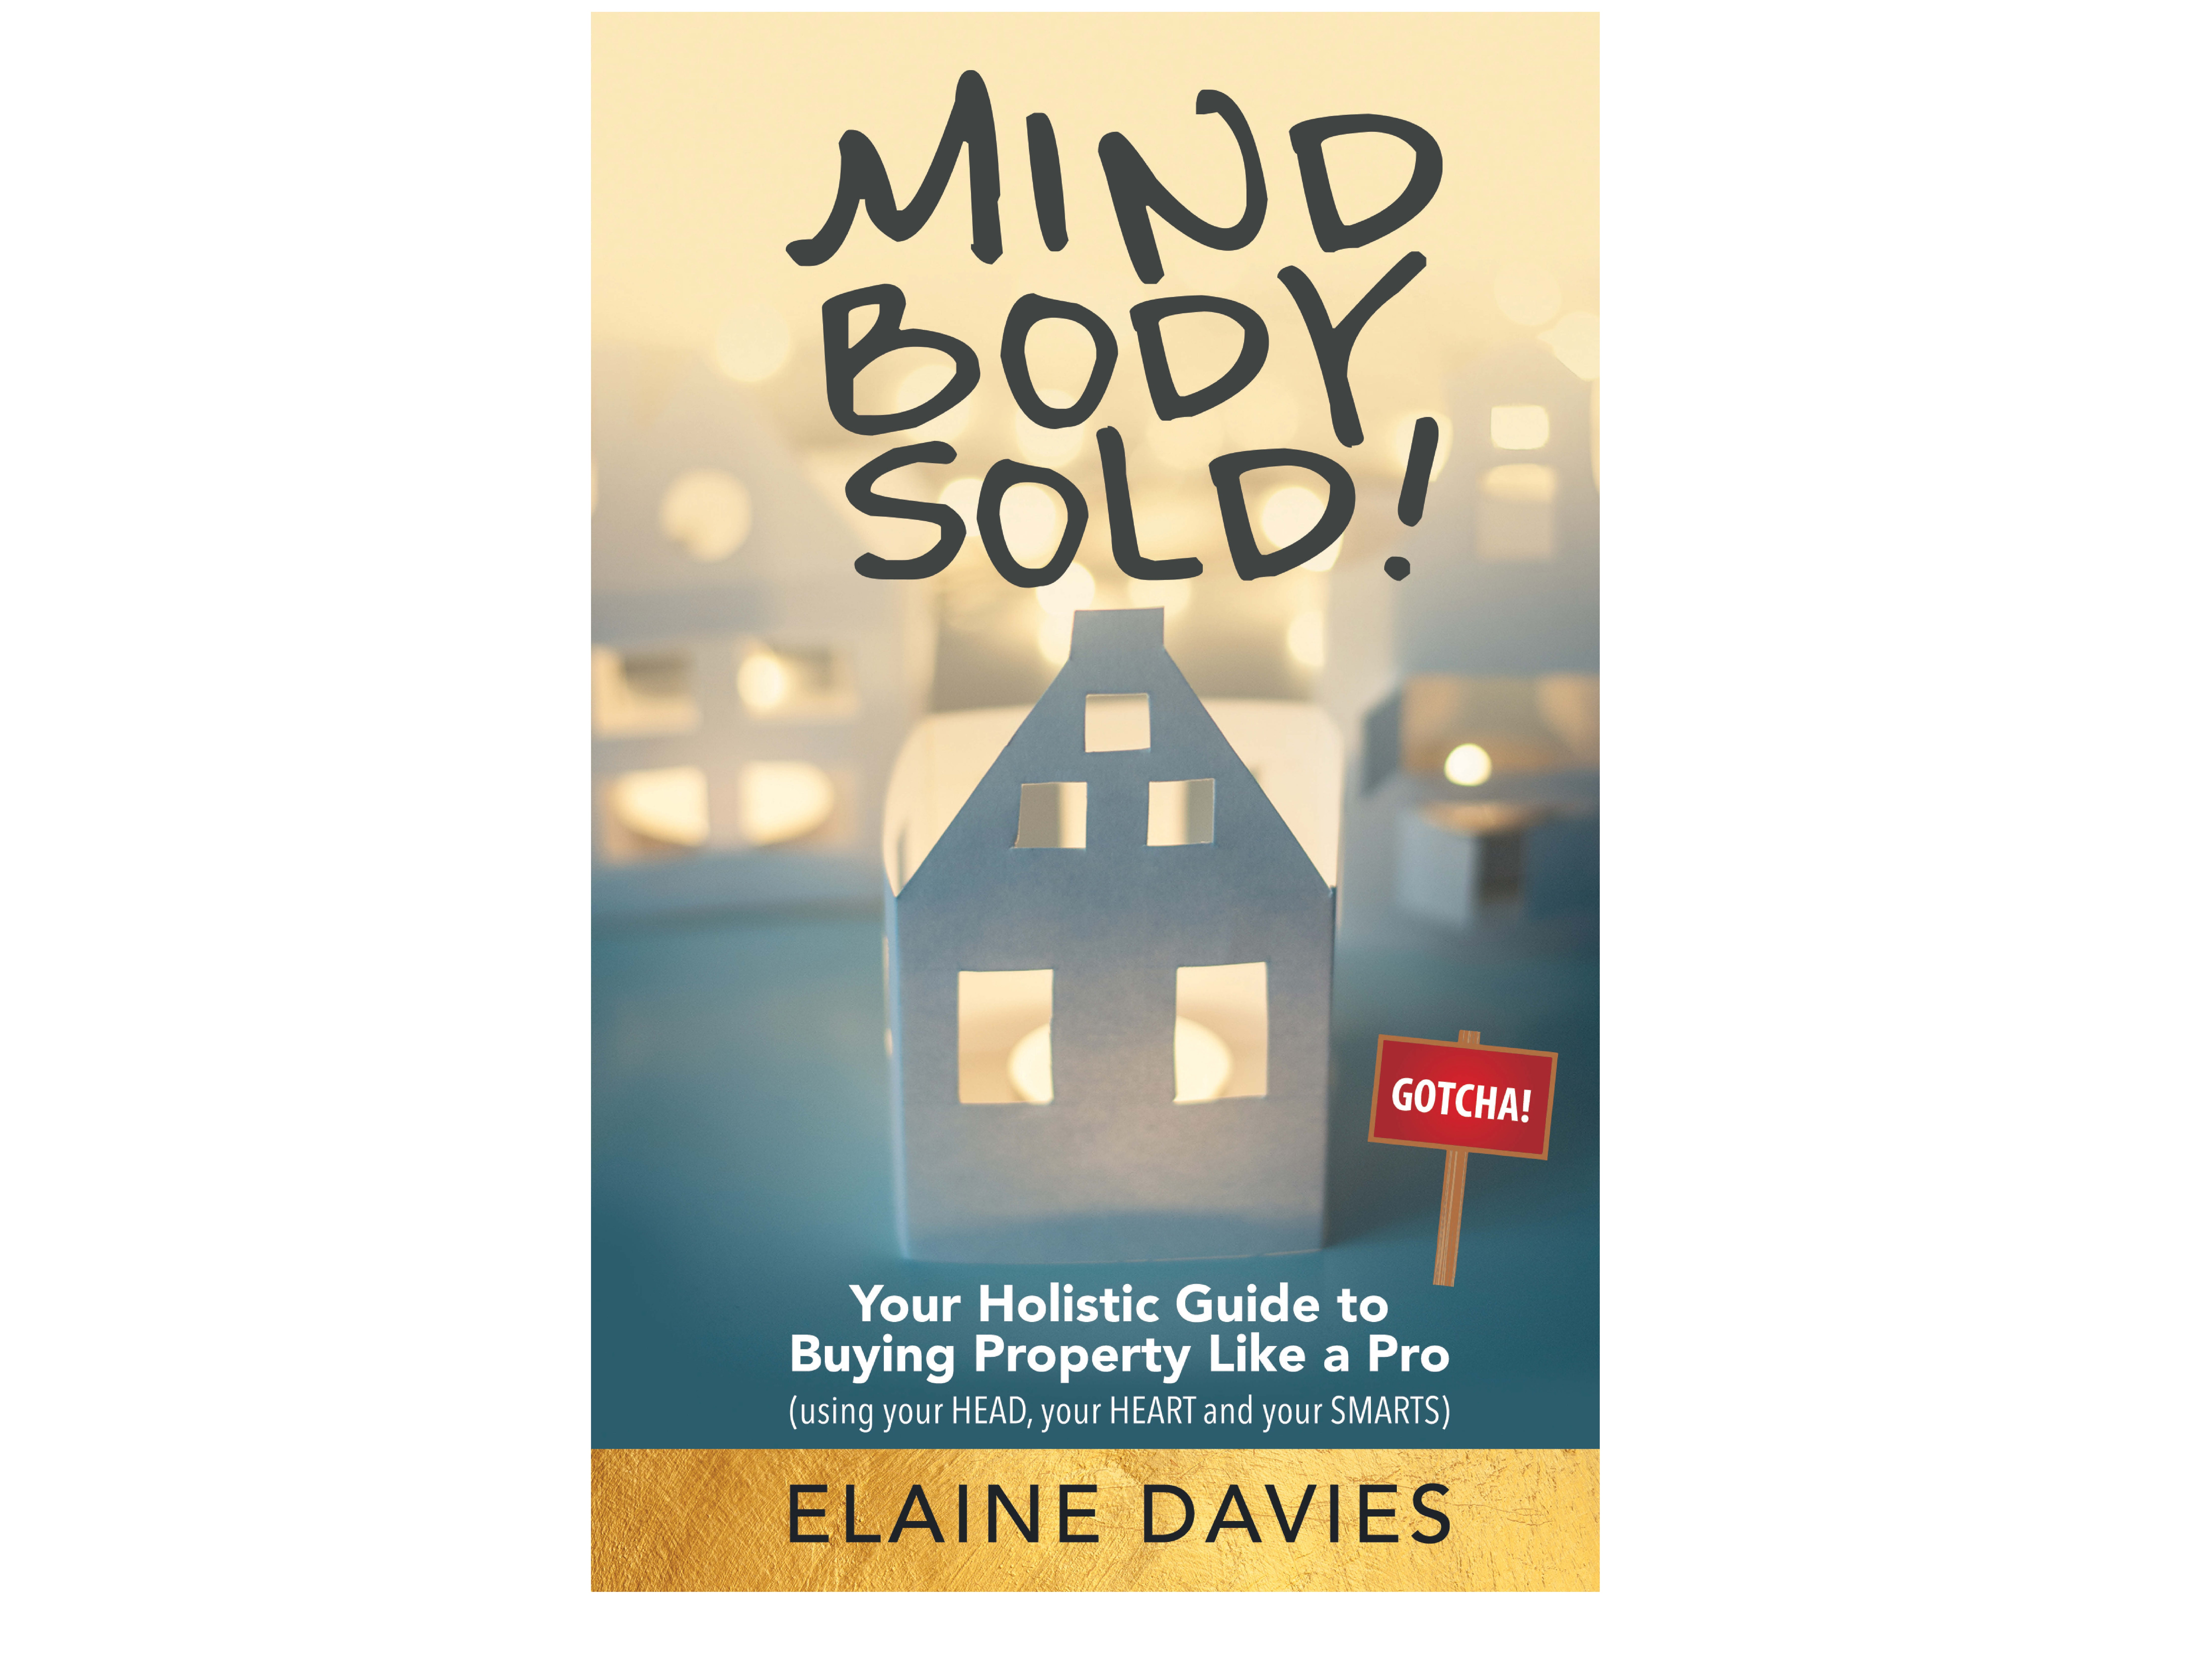 Book - mind body sold! sweepstakes